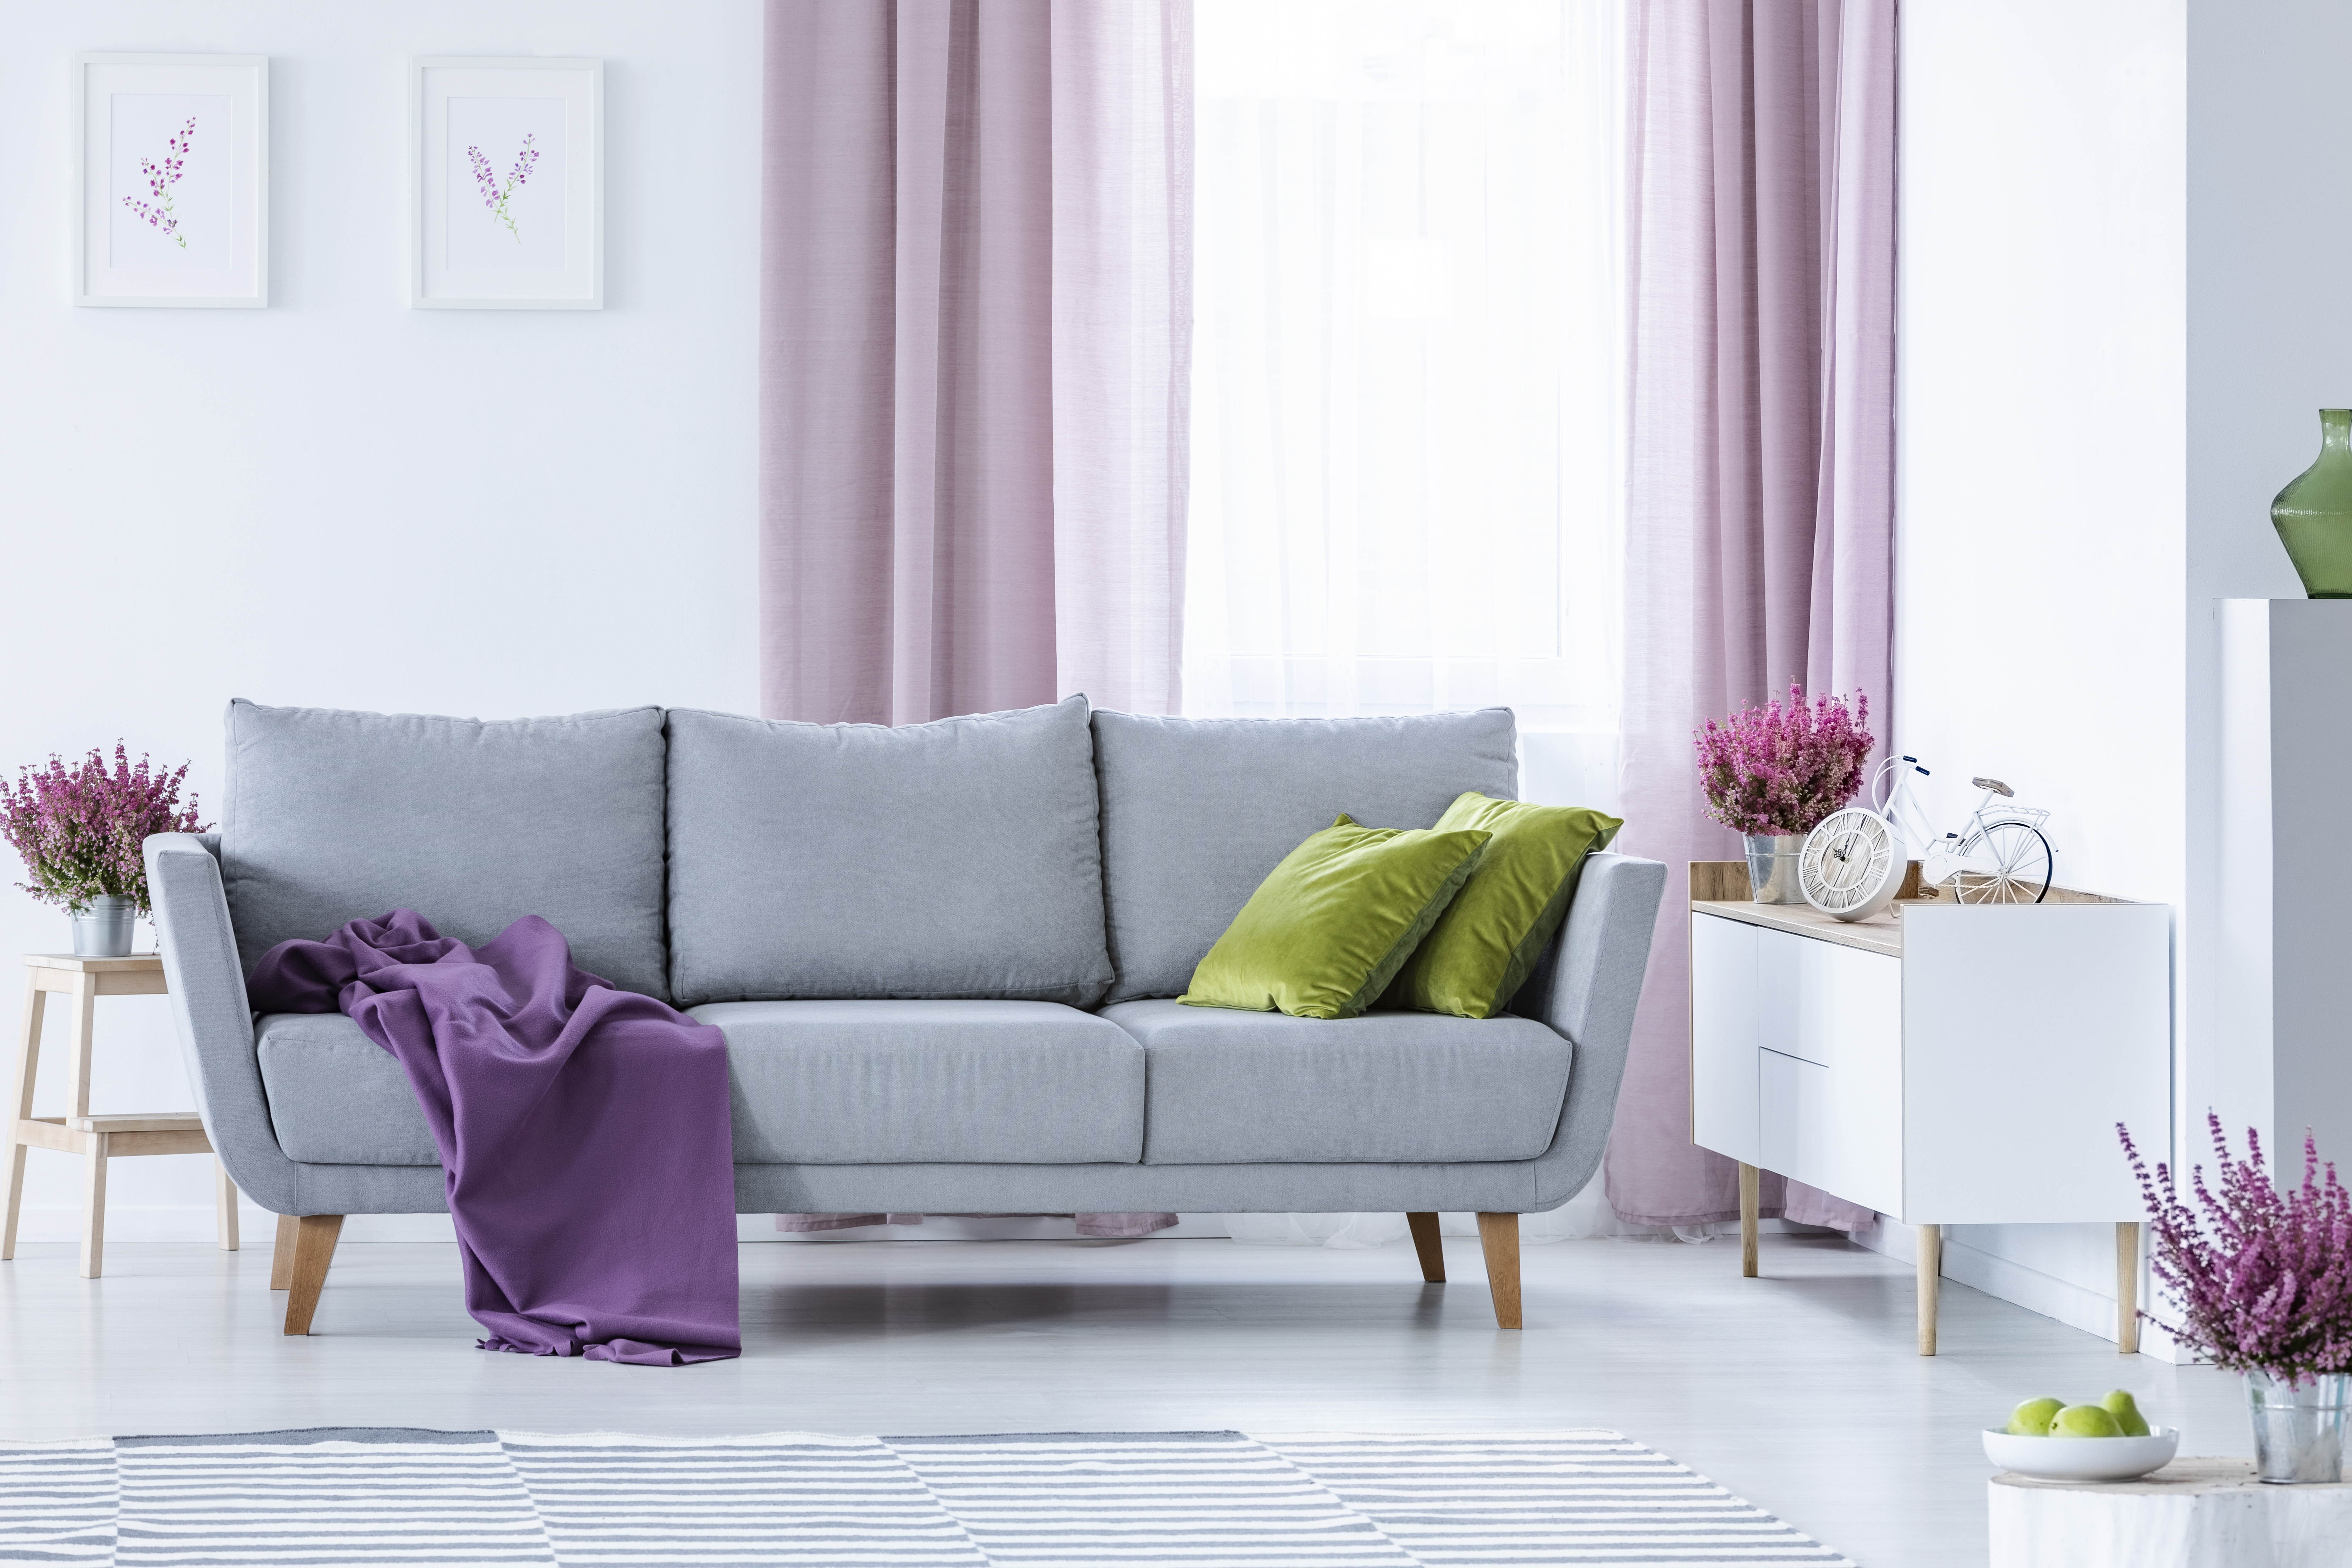 Elegant living room with big comfortable grey couch with olive green pillows and violet blanket in the middle of stylish living room with heater in pots and lilac curtainsbike